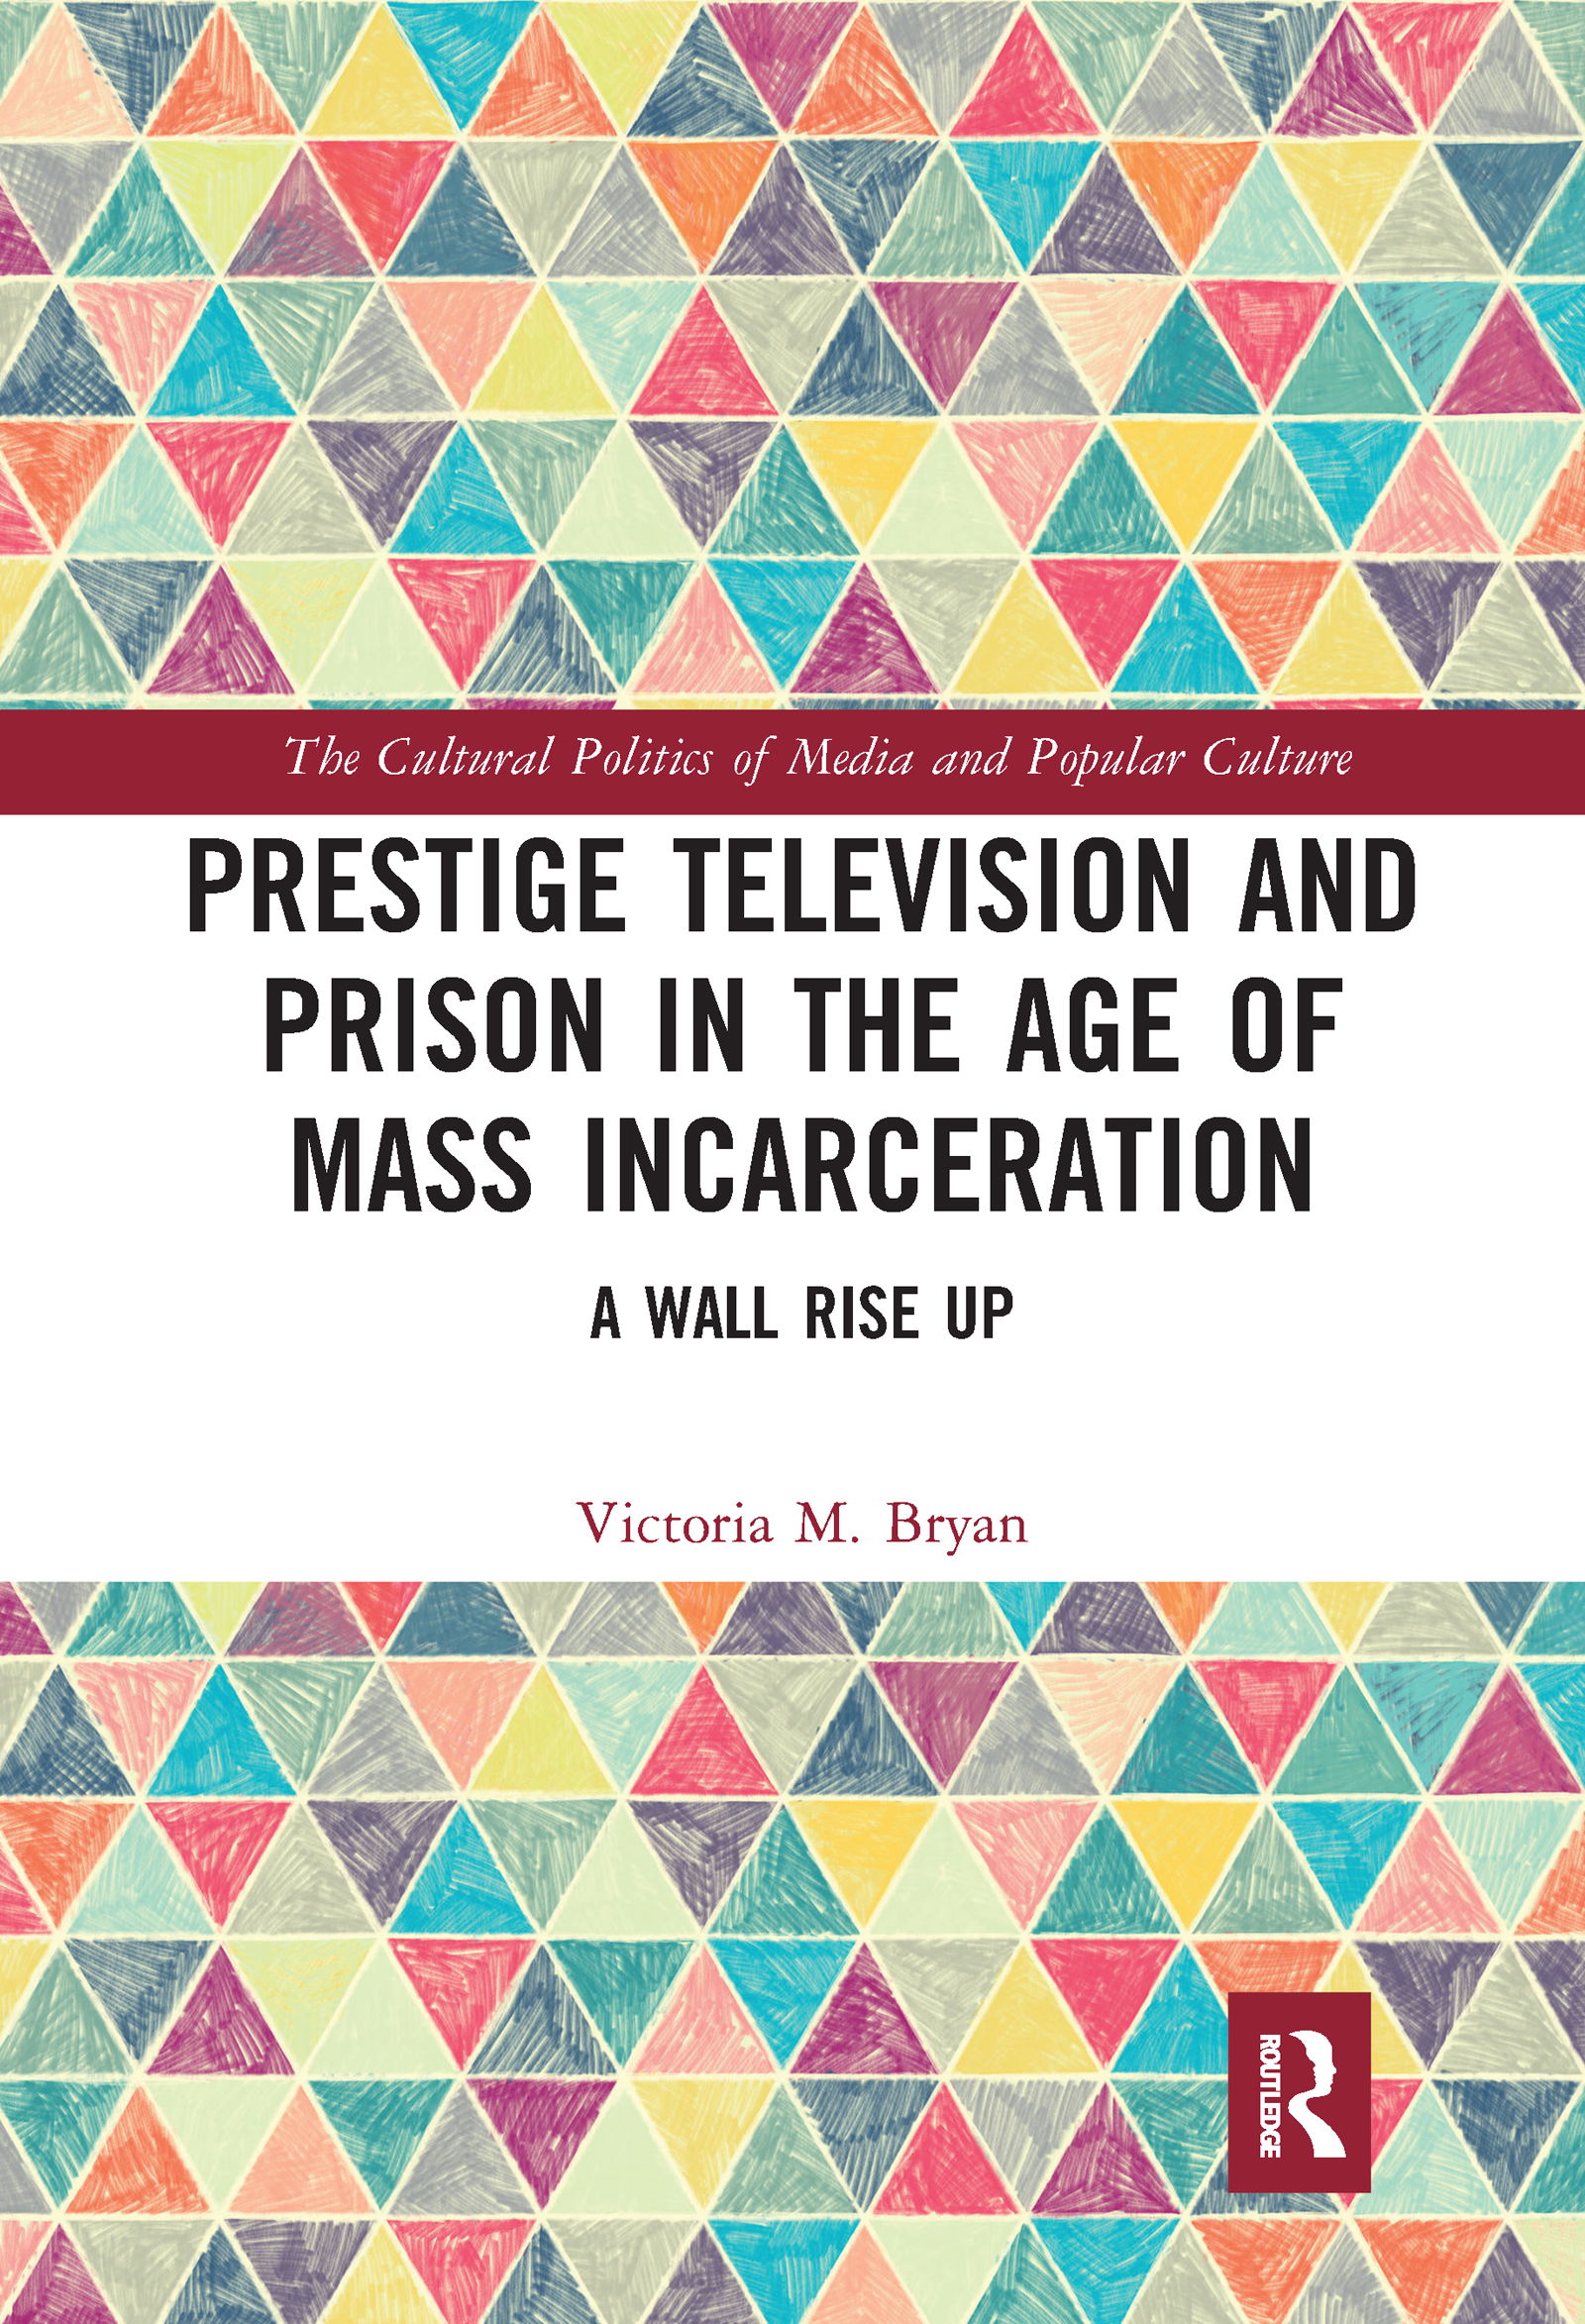 Prestige Television and Prison in the Age of Mass Incarceration